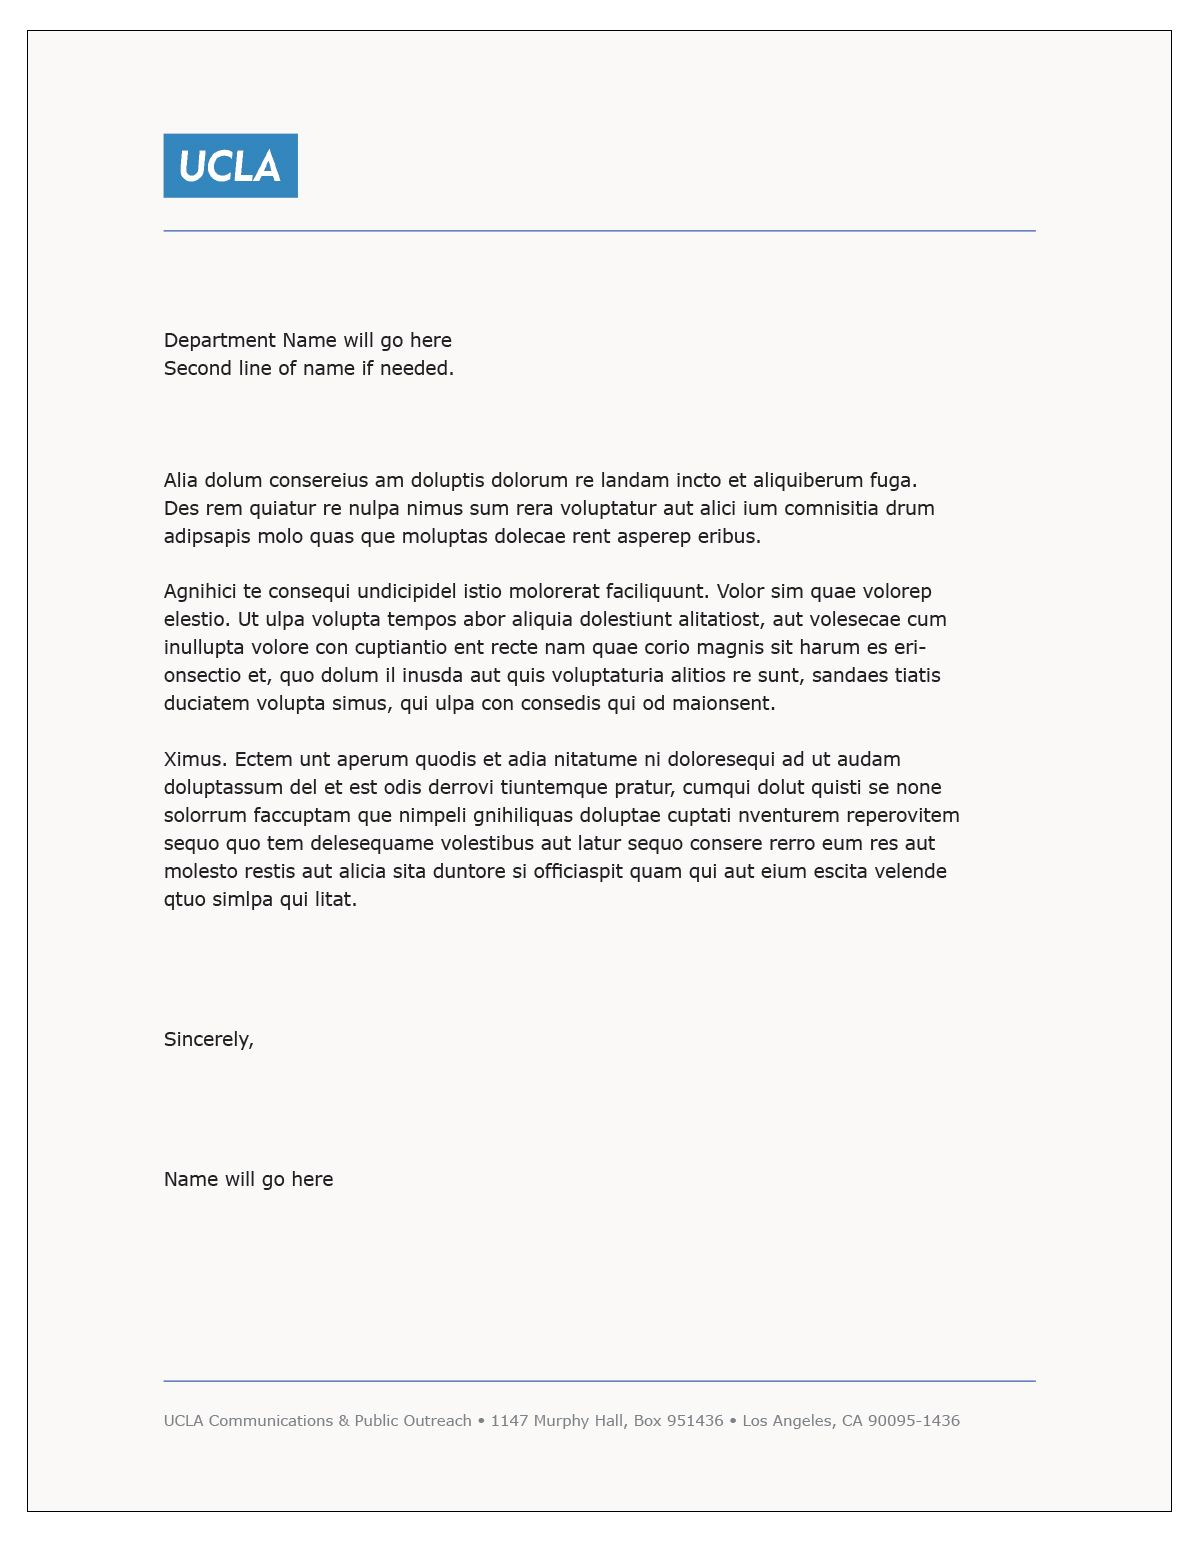 Writing formal business letters doc letter writingformal templates templates ucla brand guidelines letterhead template best free home design idea inspiration spiritdancerdesigns Choice Image